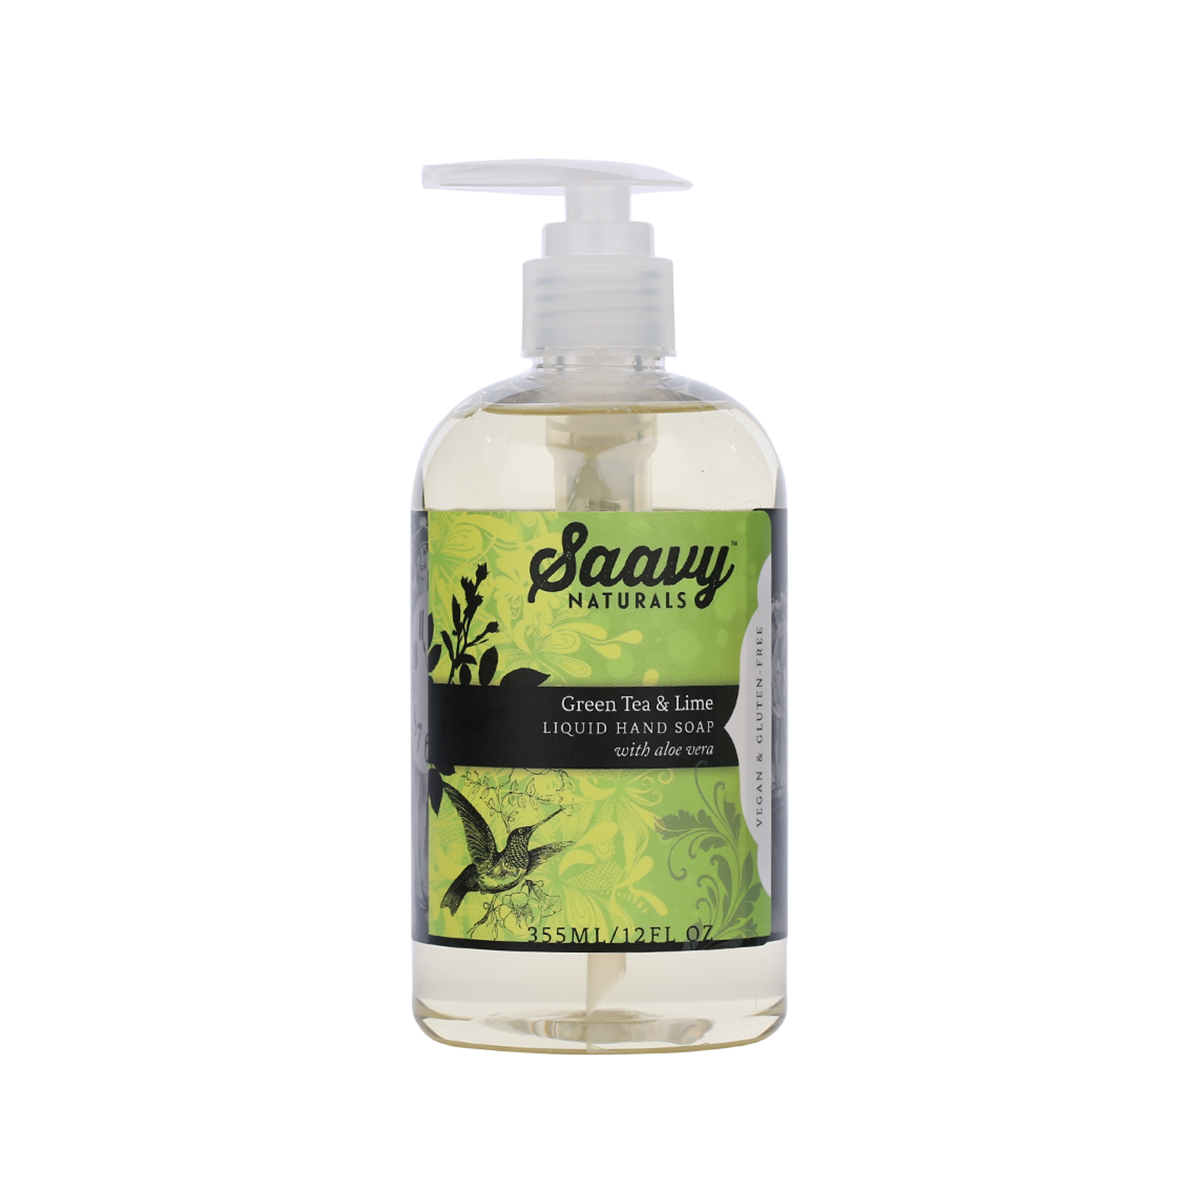 Natural And Organic Liquid Hand Soap - Green Tea & Lime